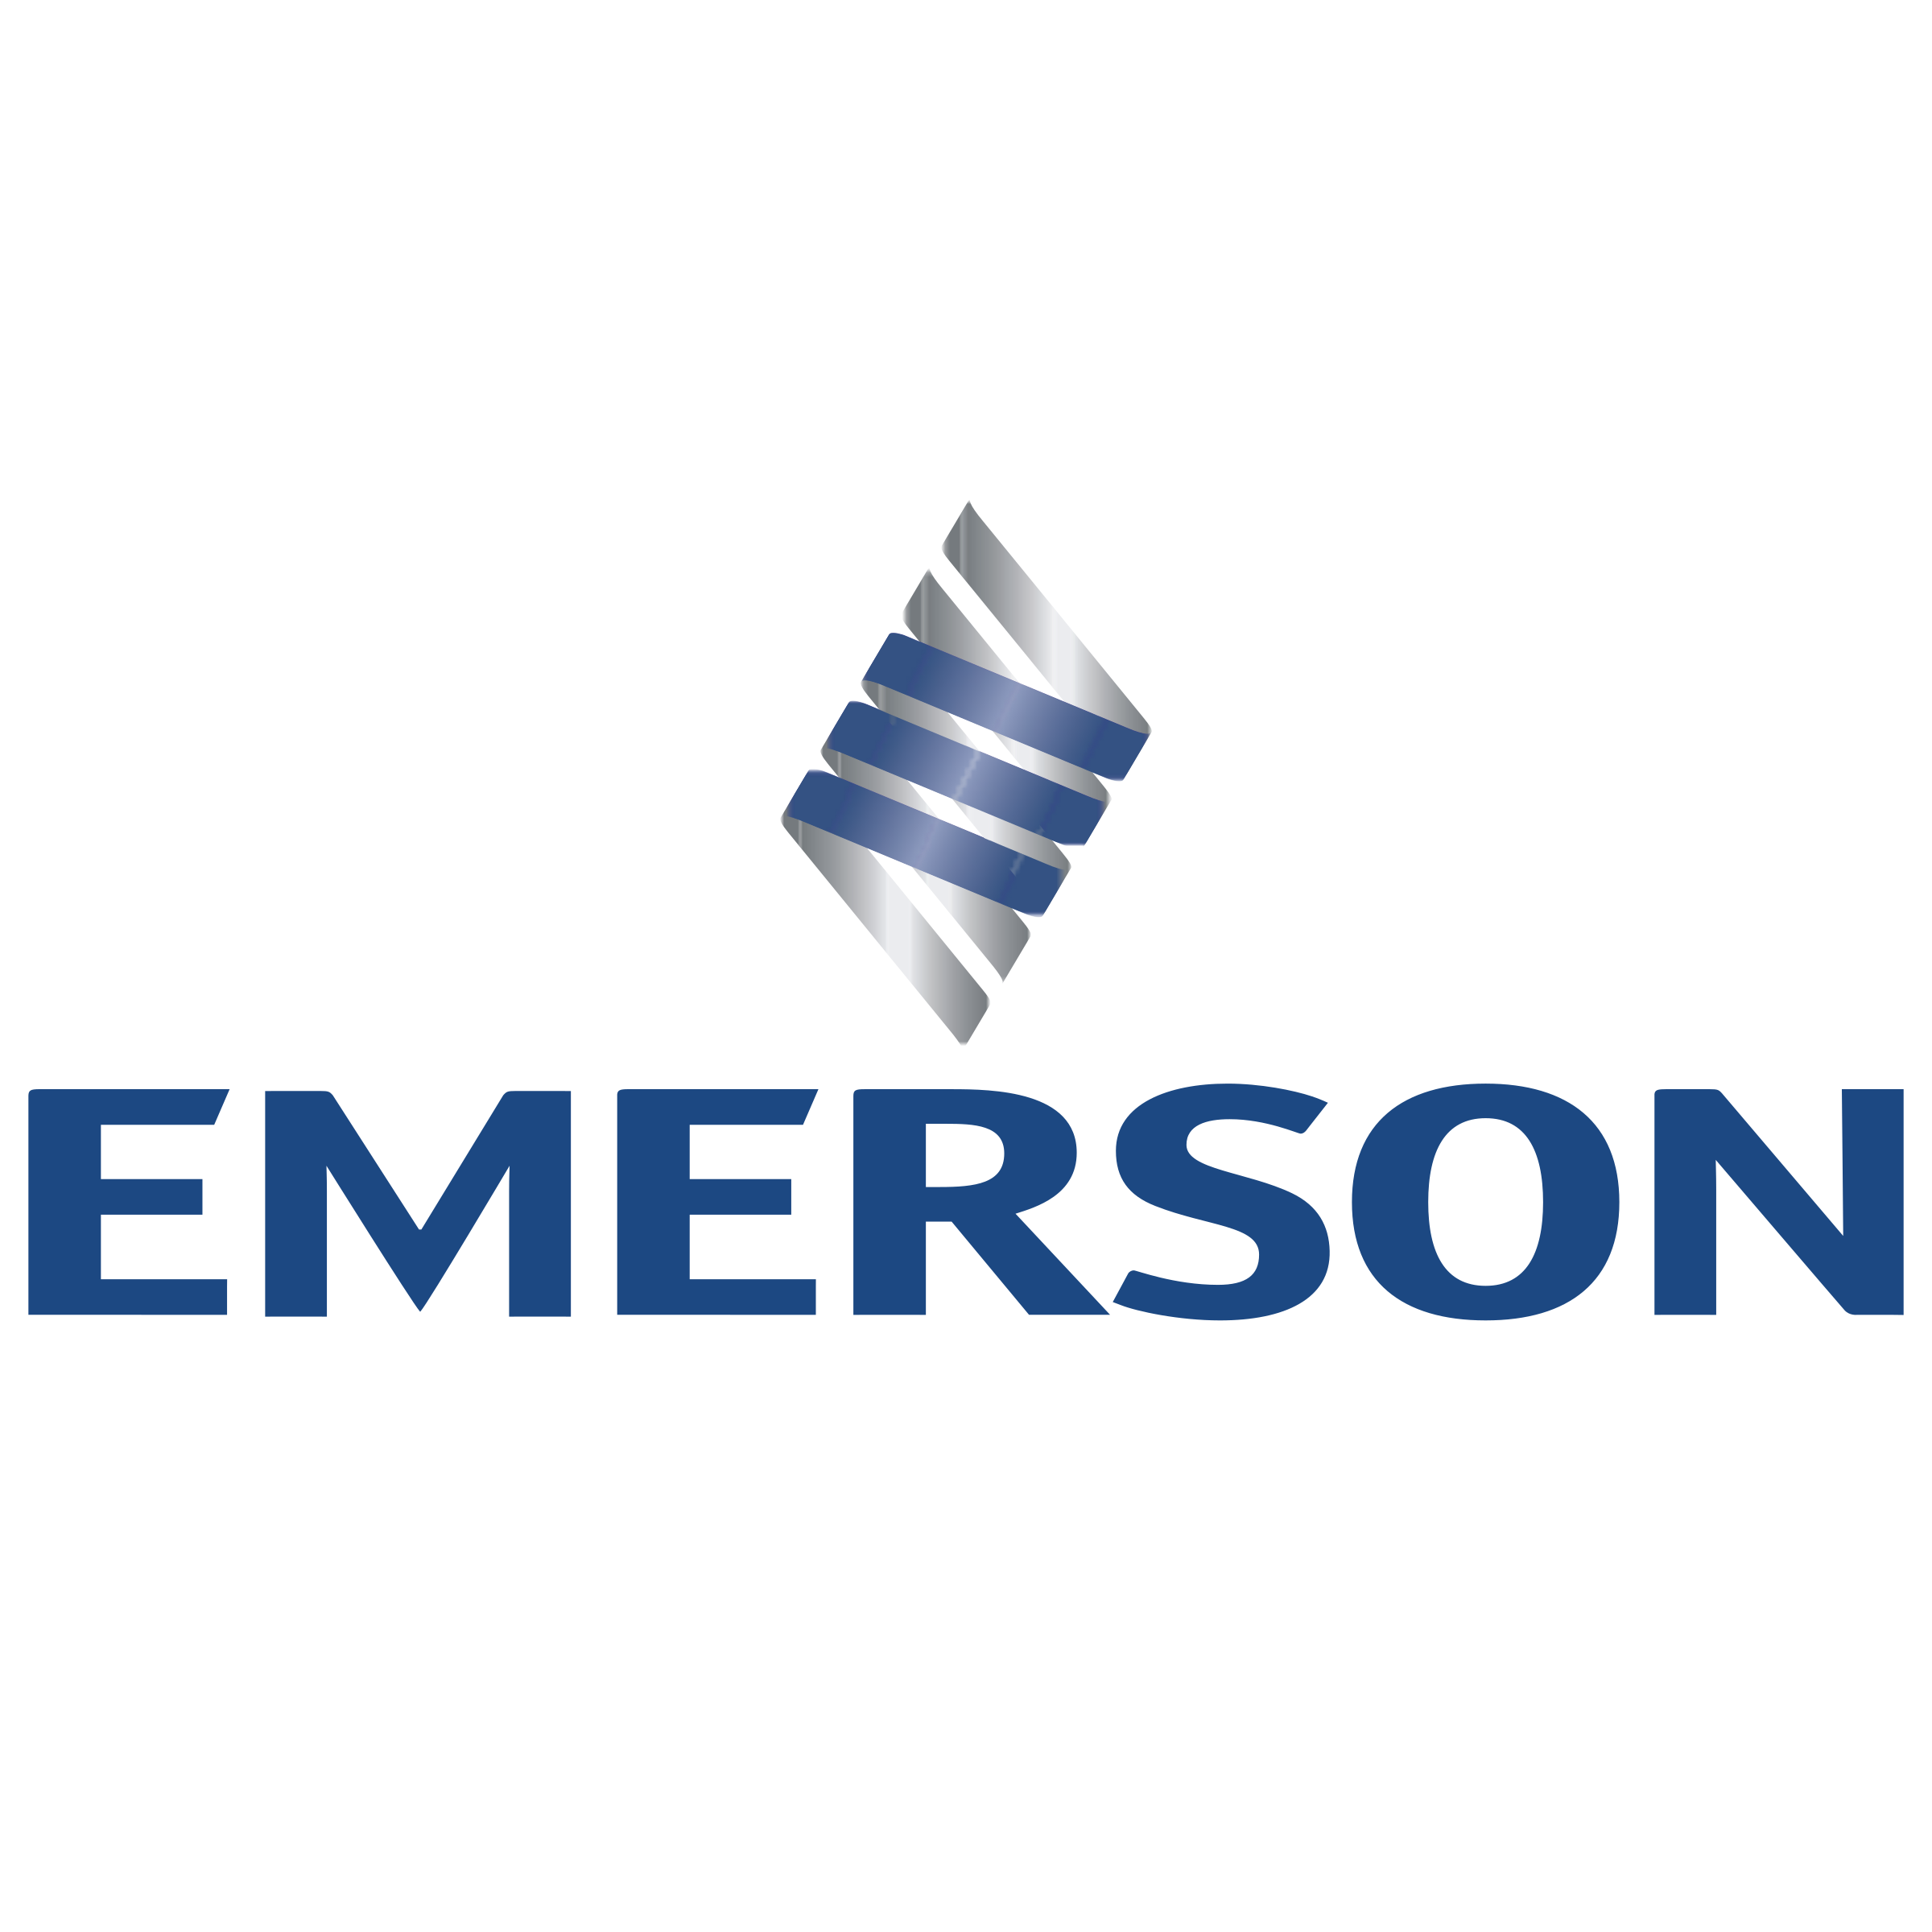 emerson-electric-logo-png-transparent